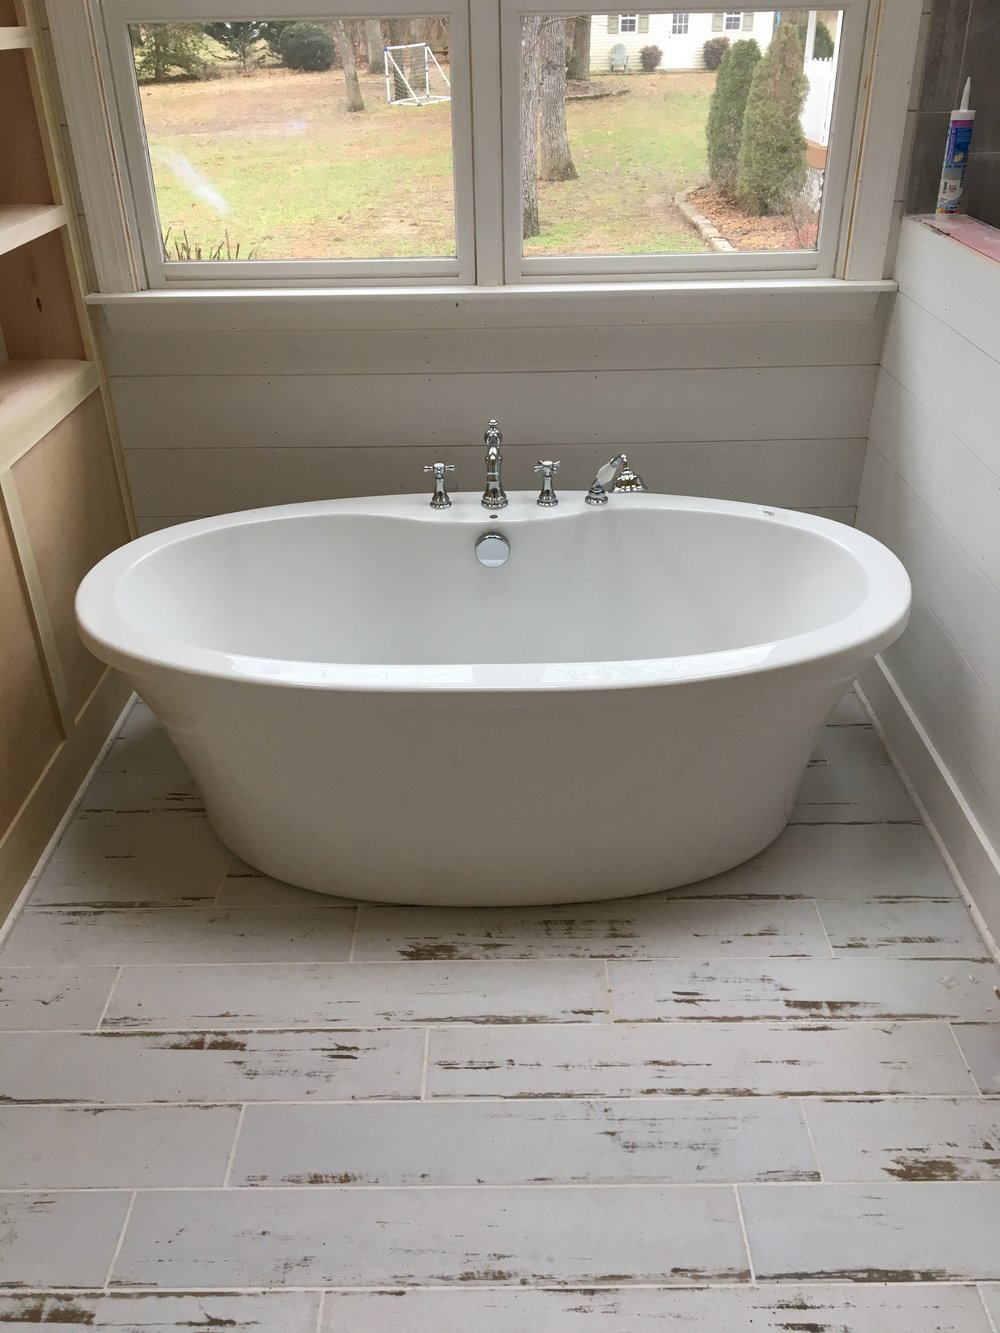 Bath Tub - Home Plumbing